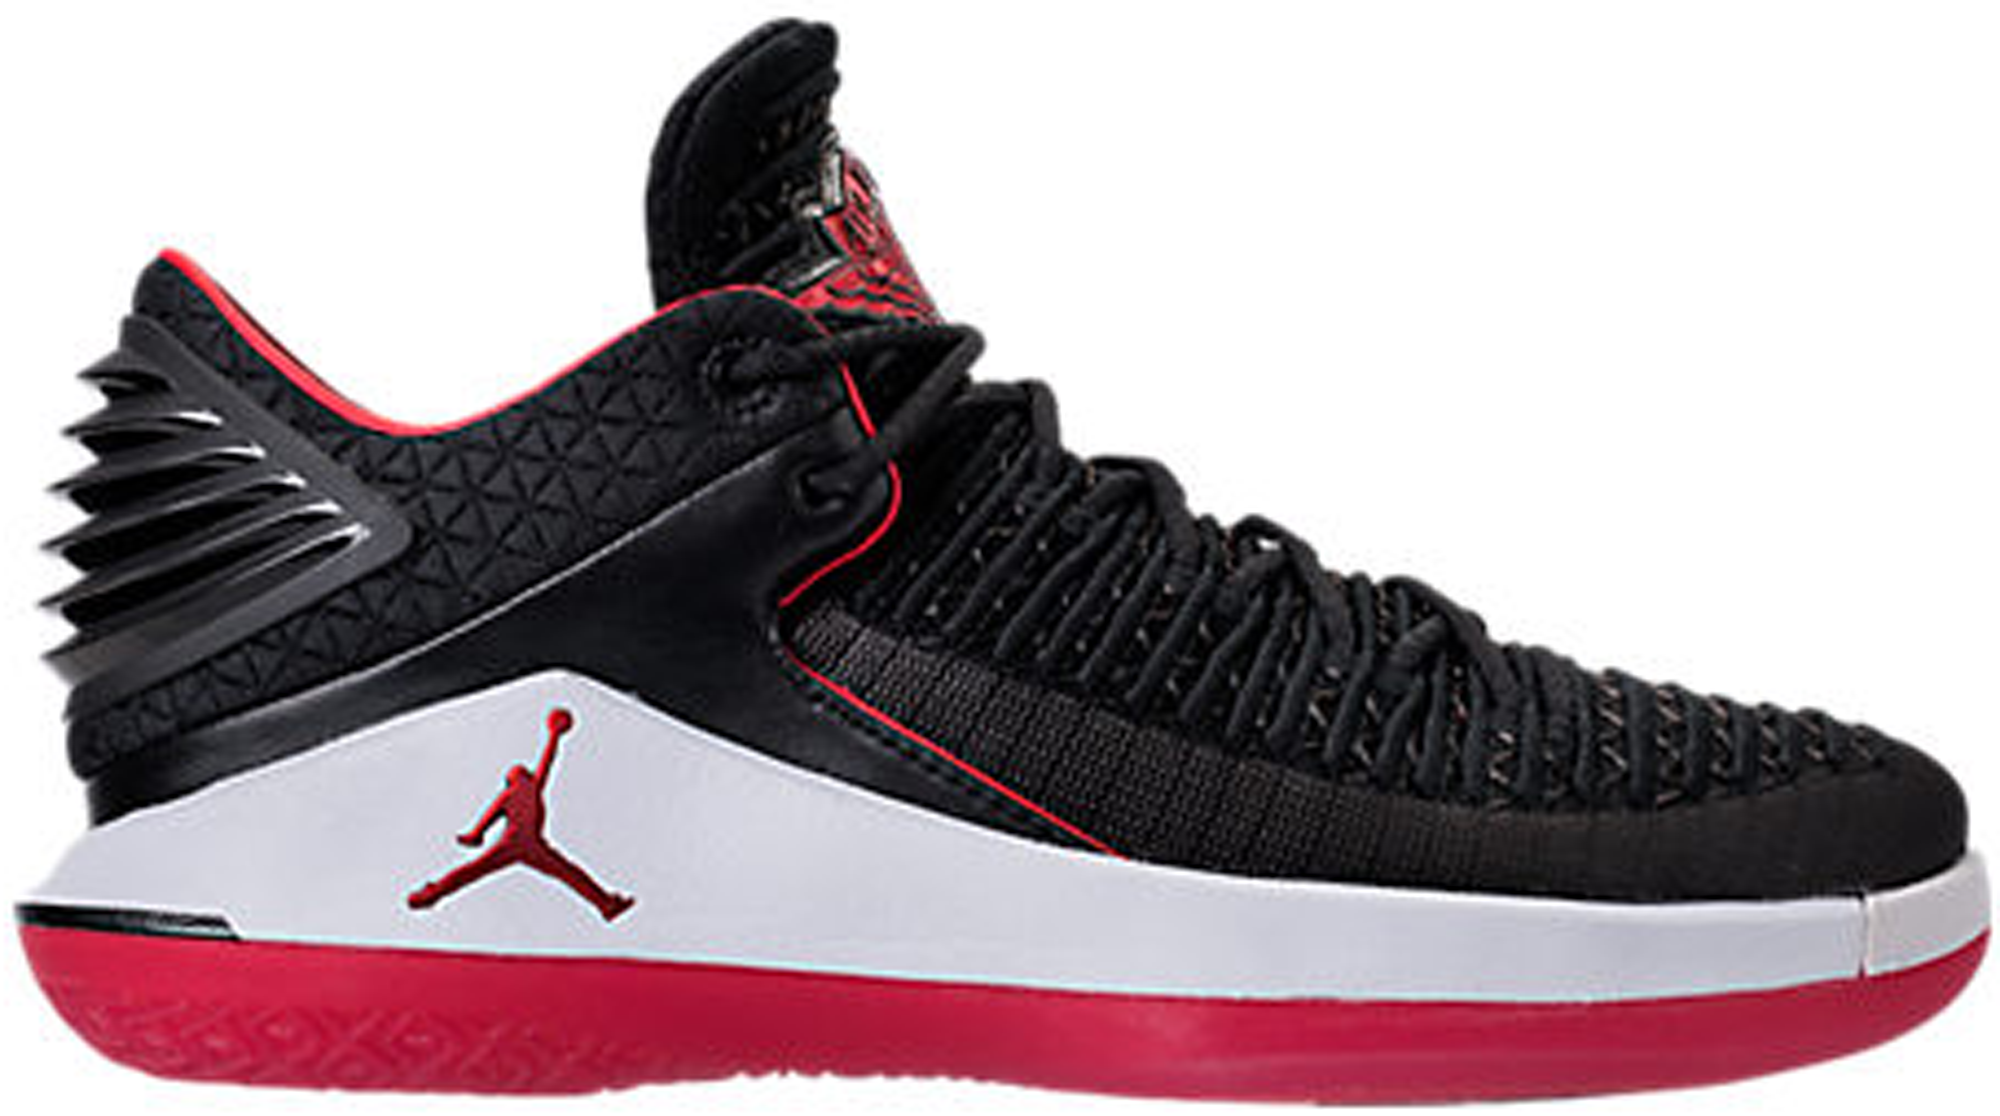 Jordan XXXII Low MJ Day